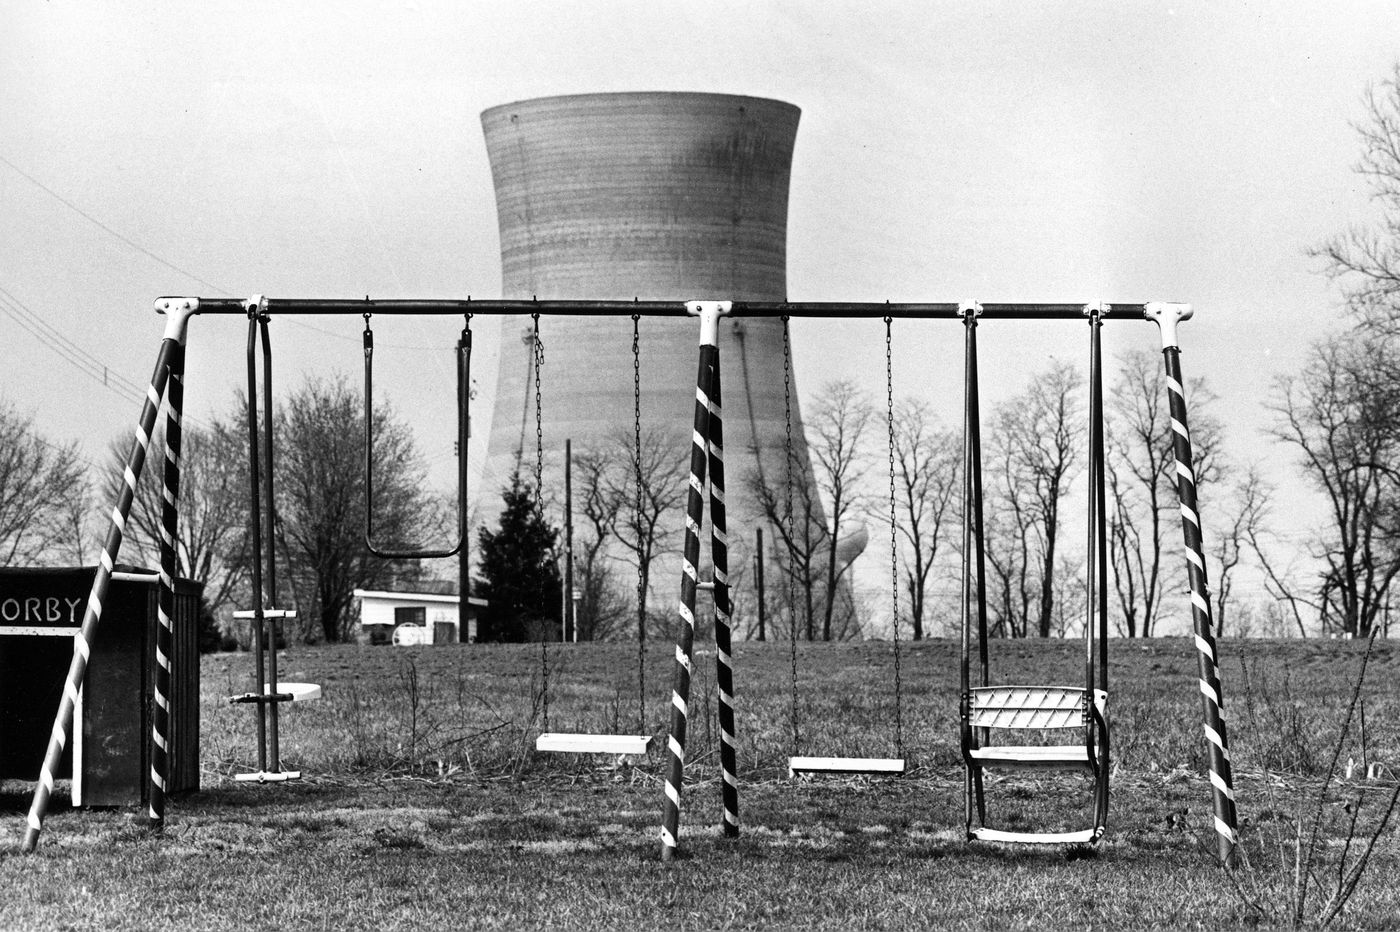 Rescuing nuclear power plants could come with conditions